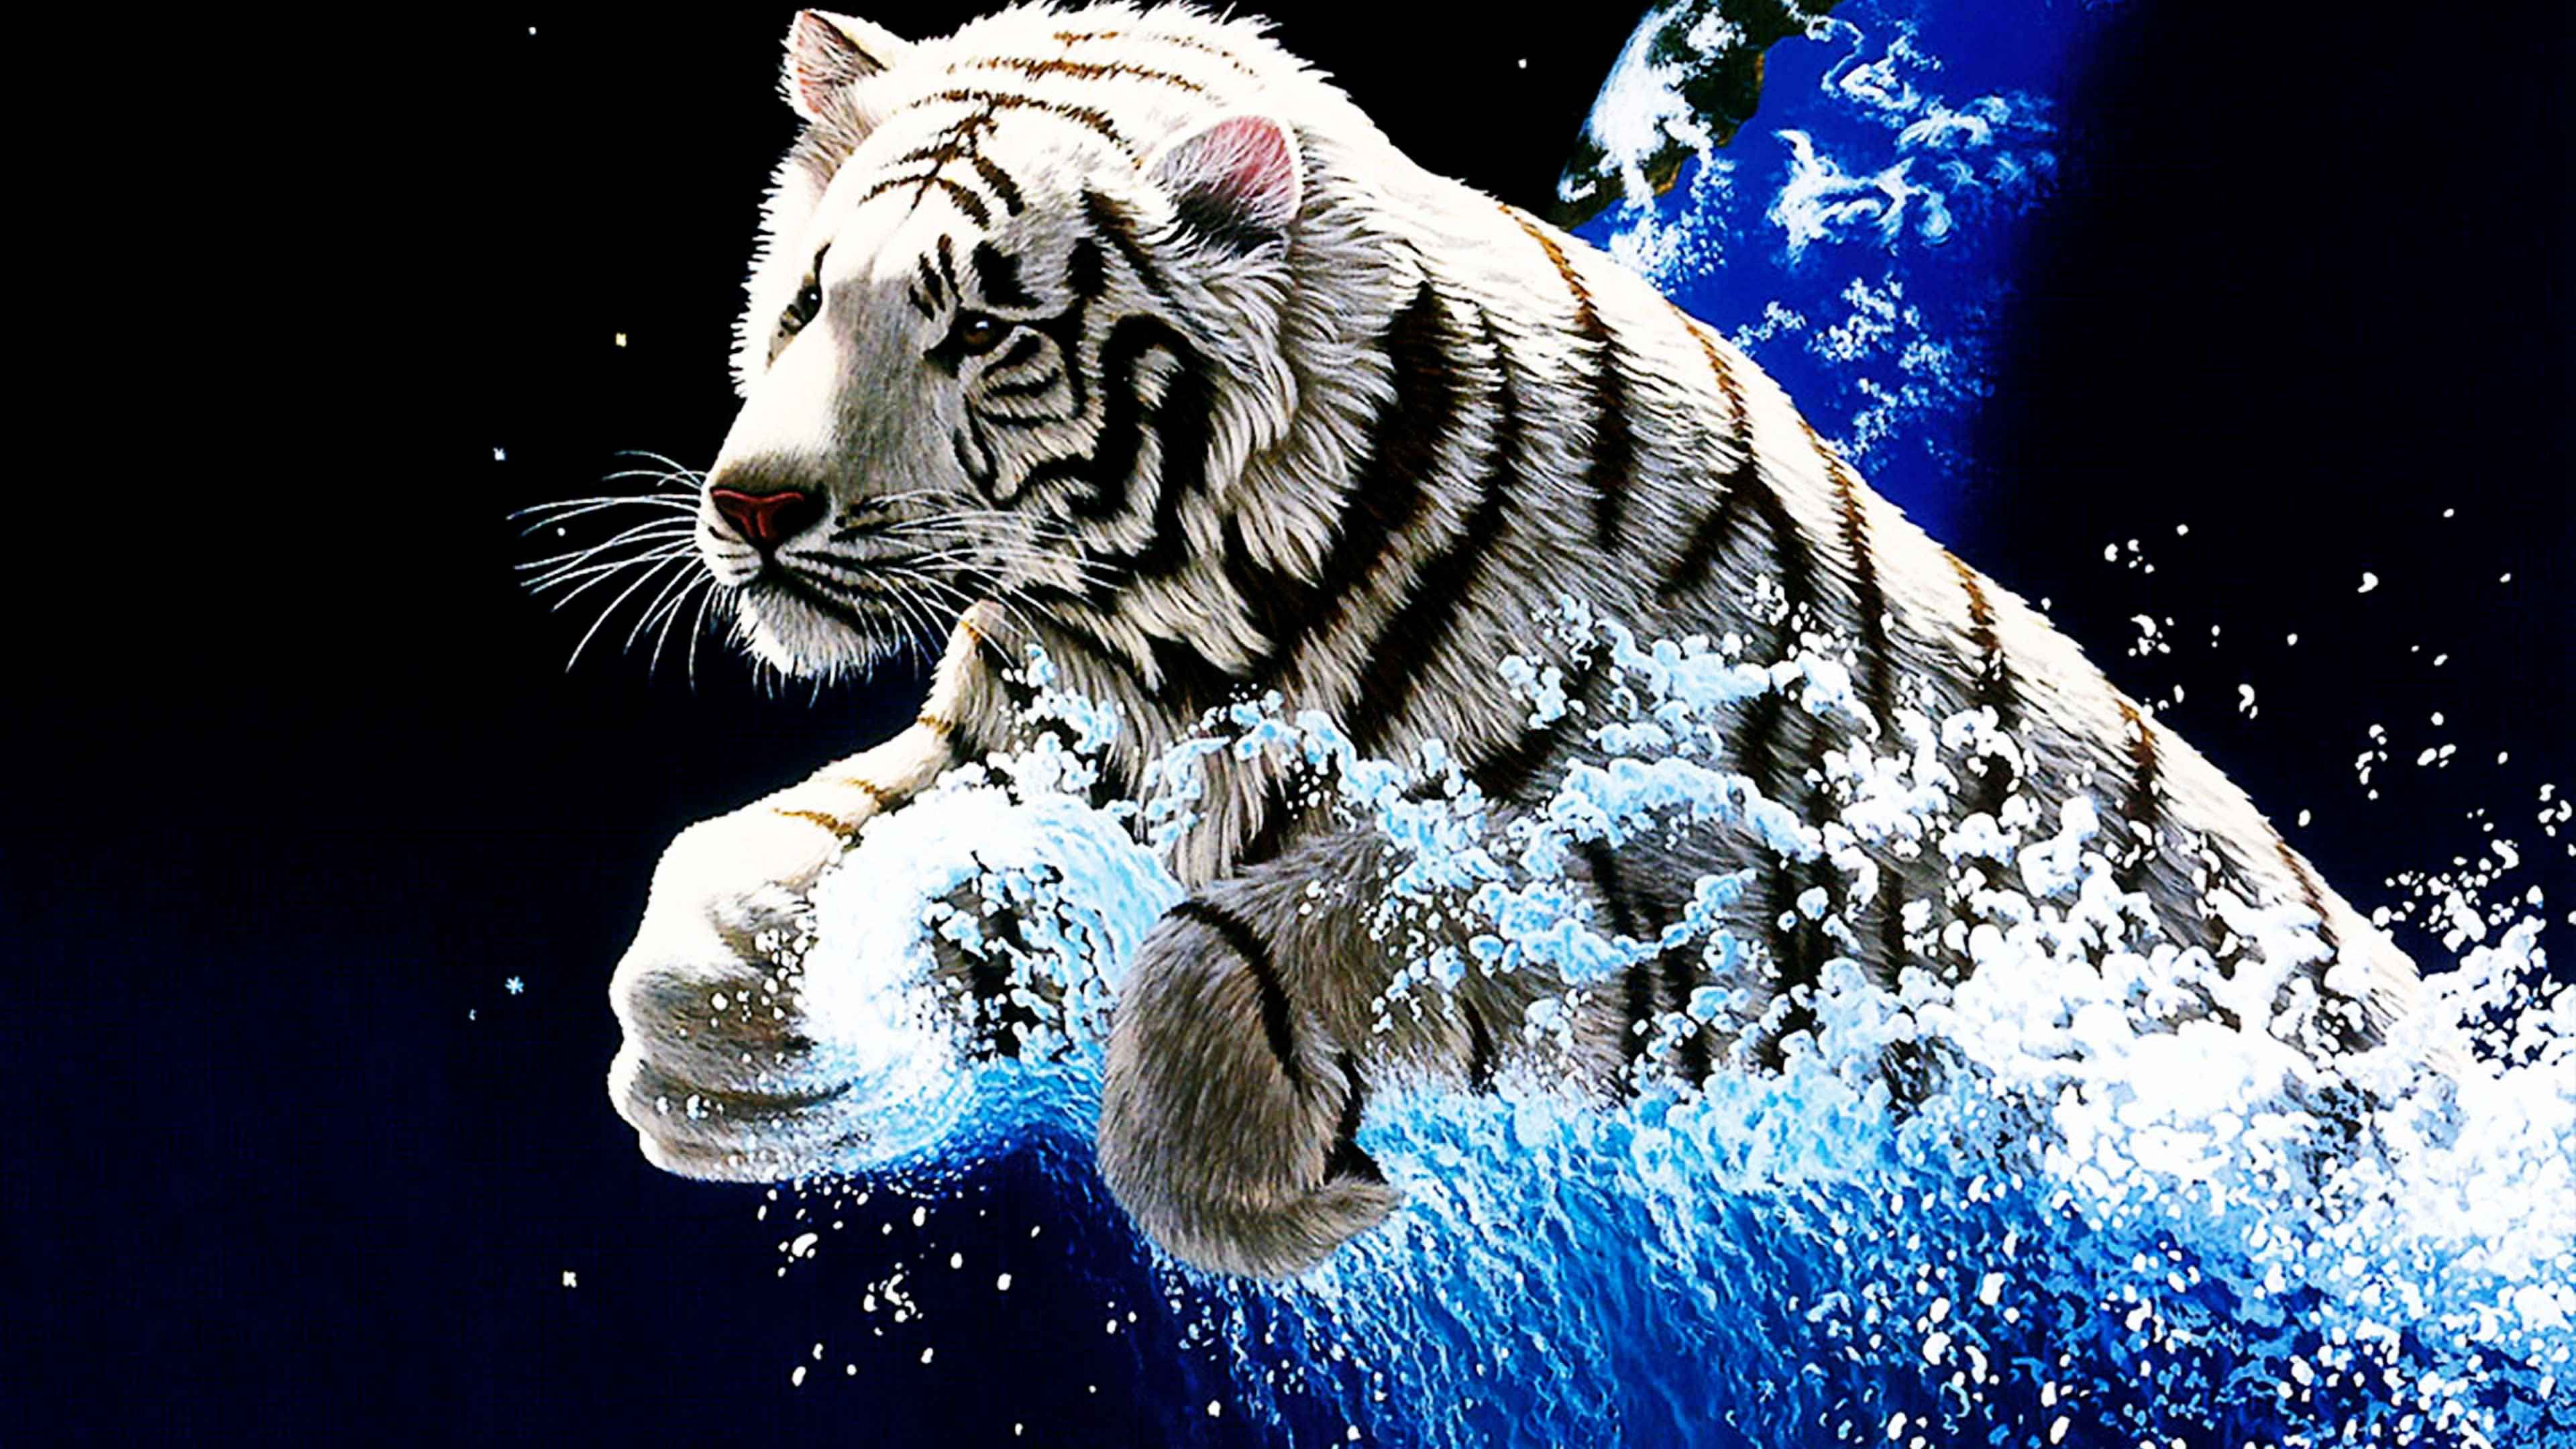 Animated 3d Tigers Wallpaper Hd Best Wallpaper Hd Tiger Wallpaper Pet Tiger Tiger Images